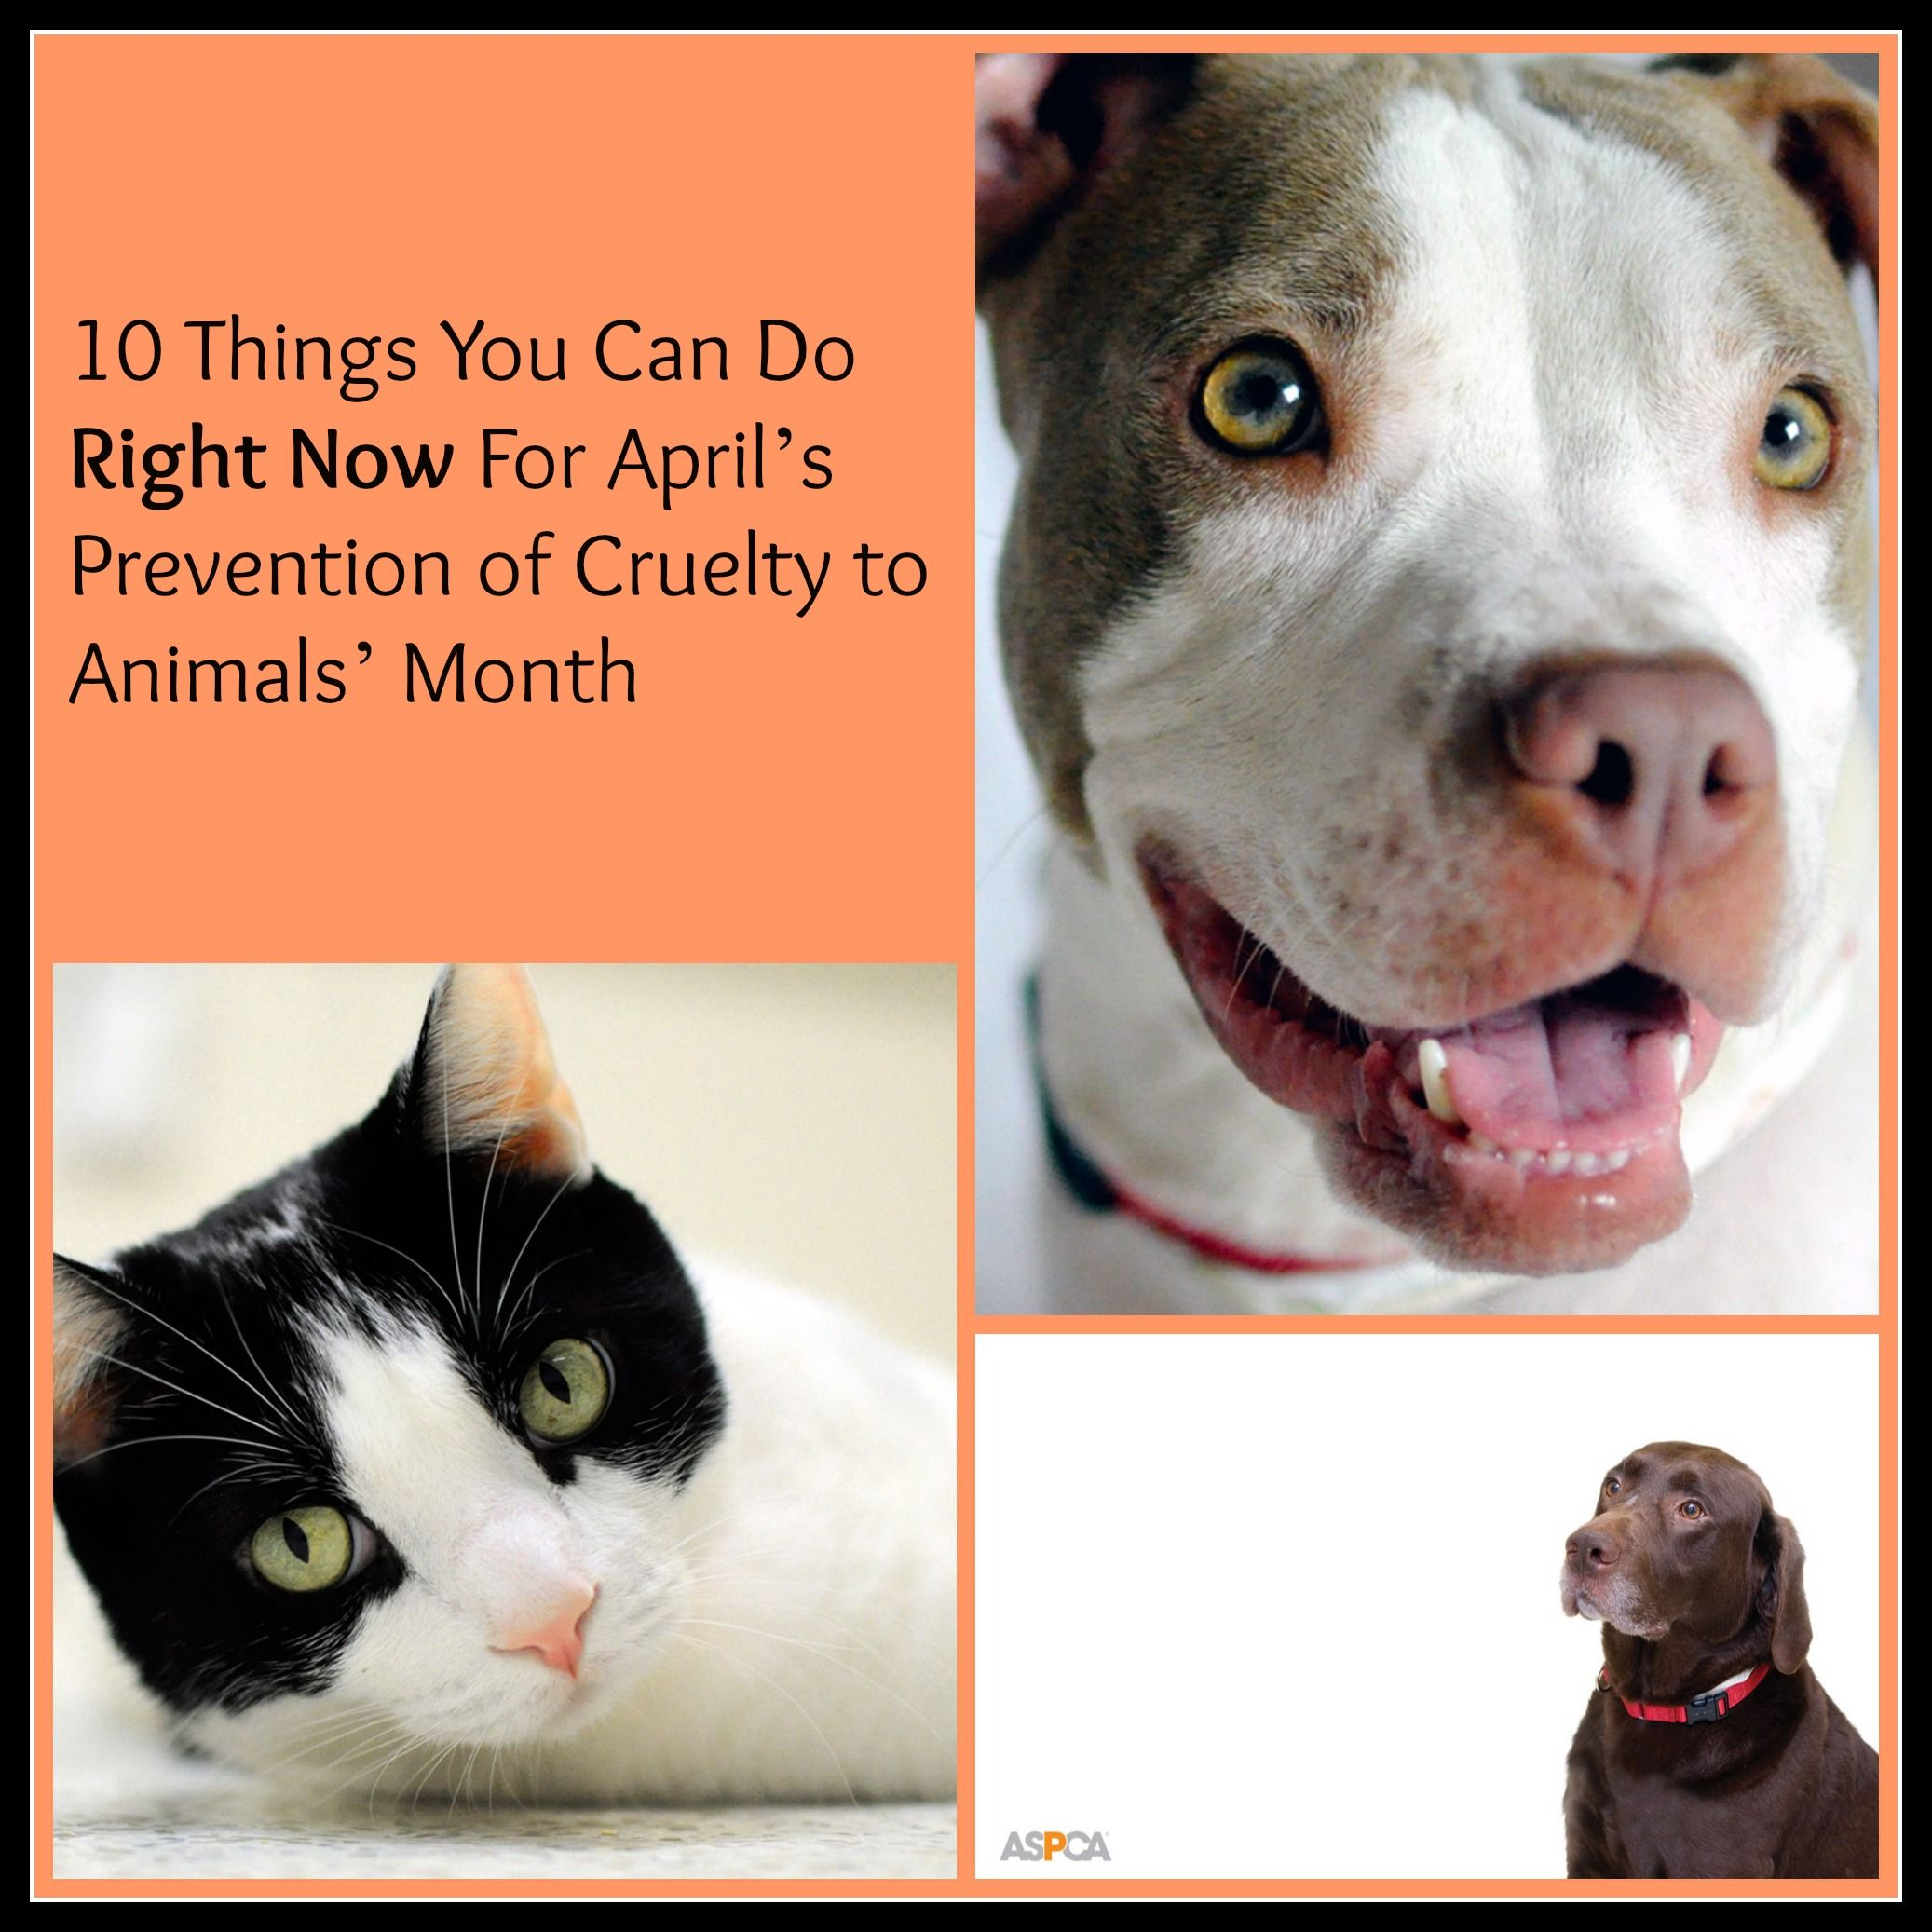 short essay on prevention of cruelty to animals This work culminated in 1986 with the introduction of the prevention of cruelty to animals act 1986 the act (in summary) is in 5 parts: part 1 outlines its purpose, scope, application and code making powers.